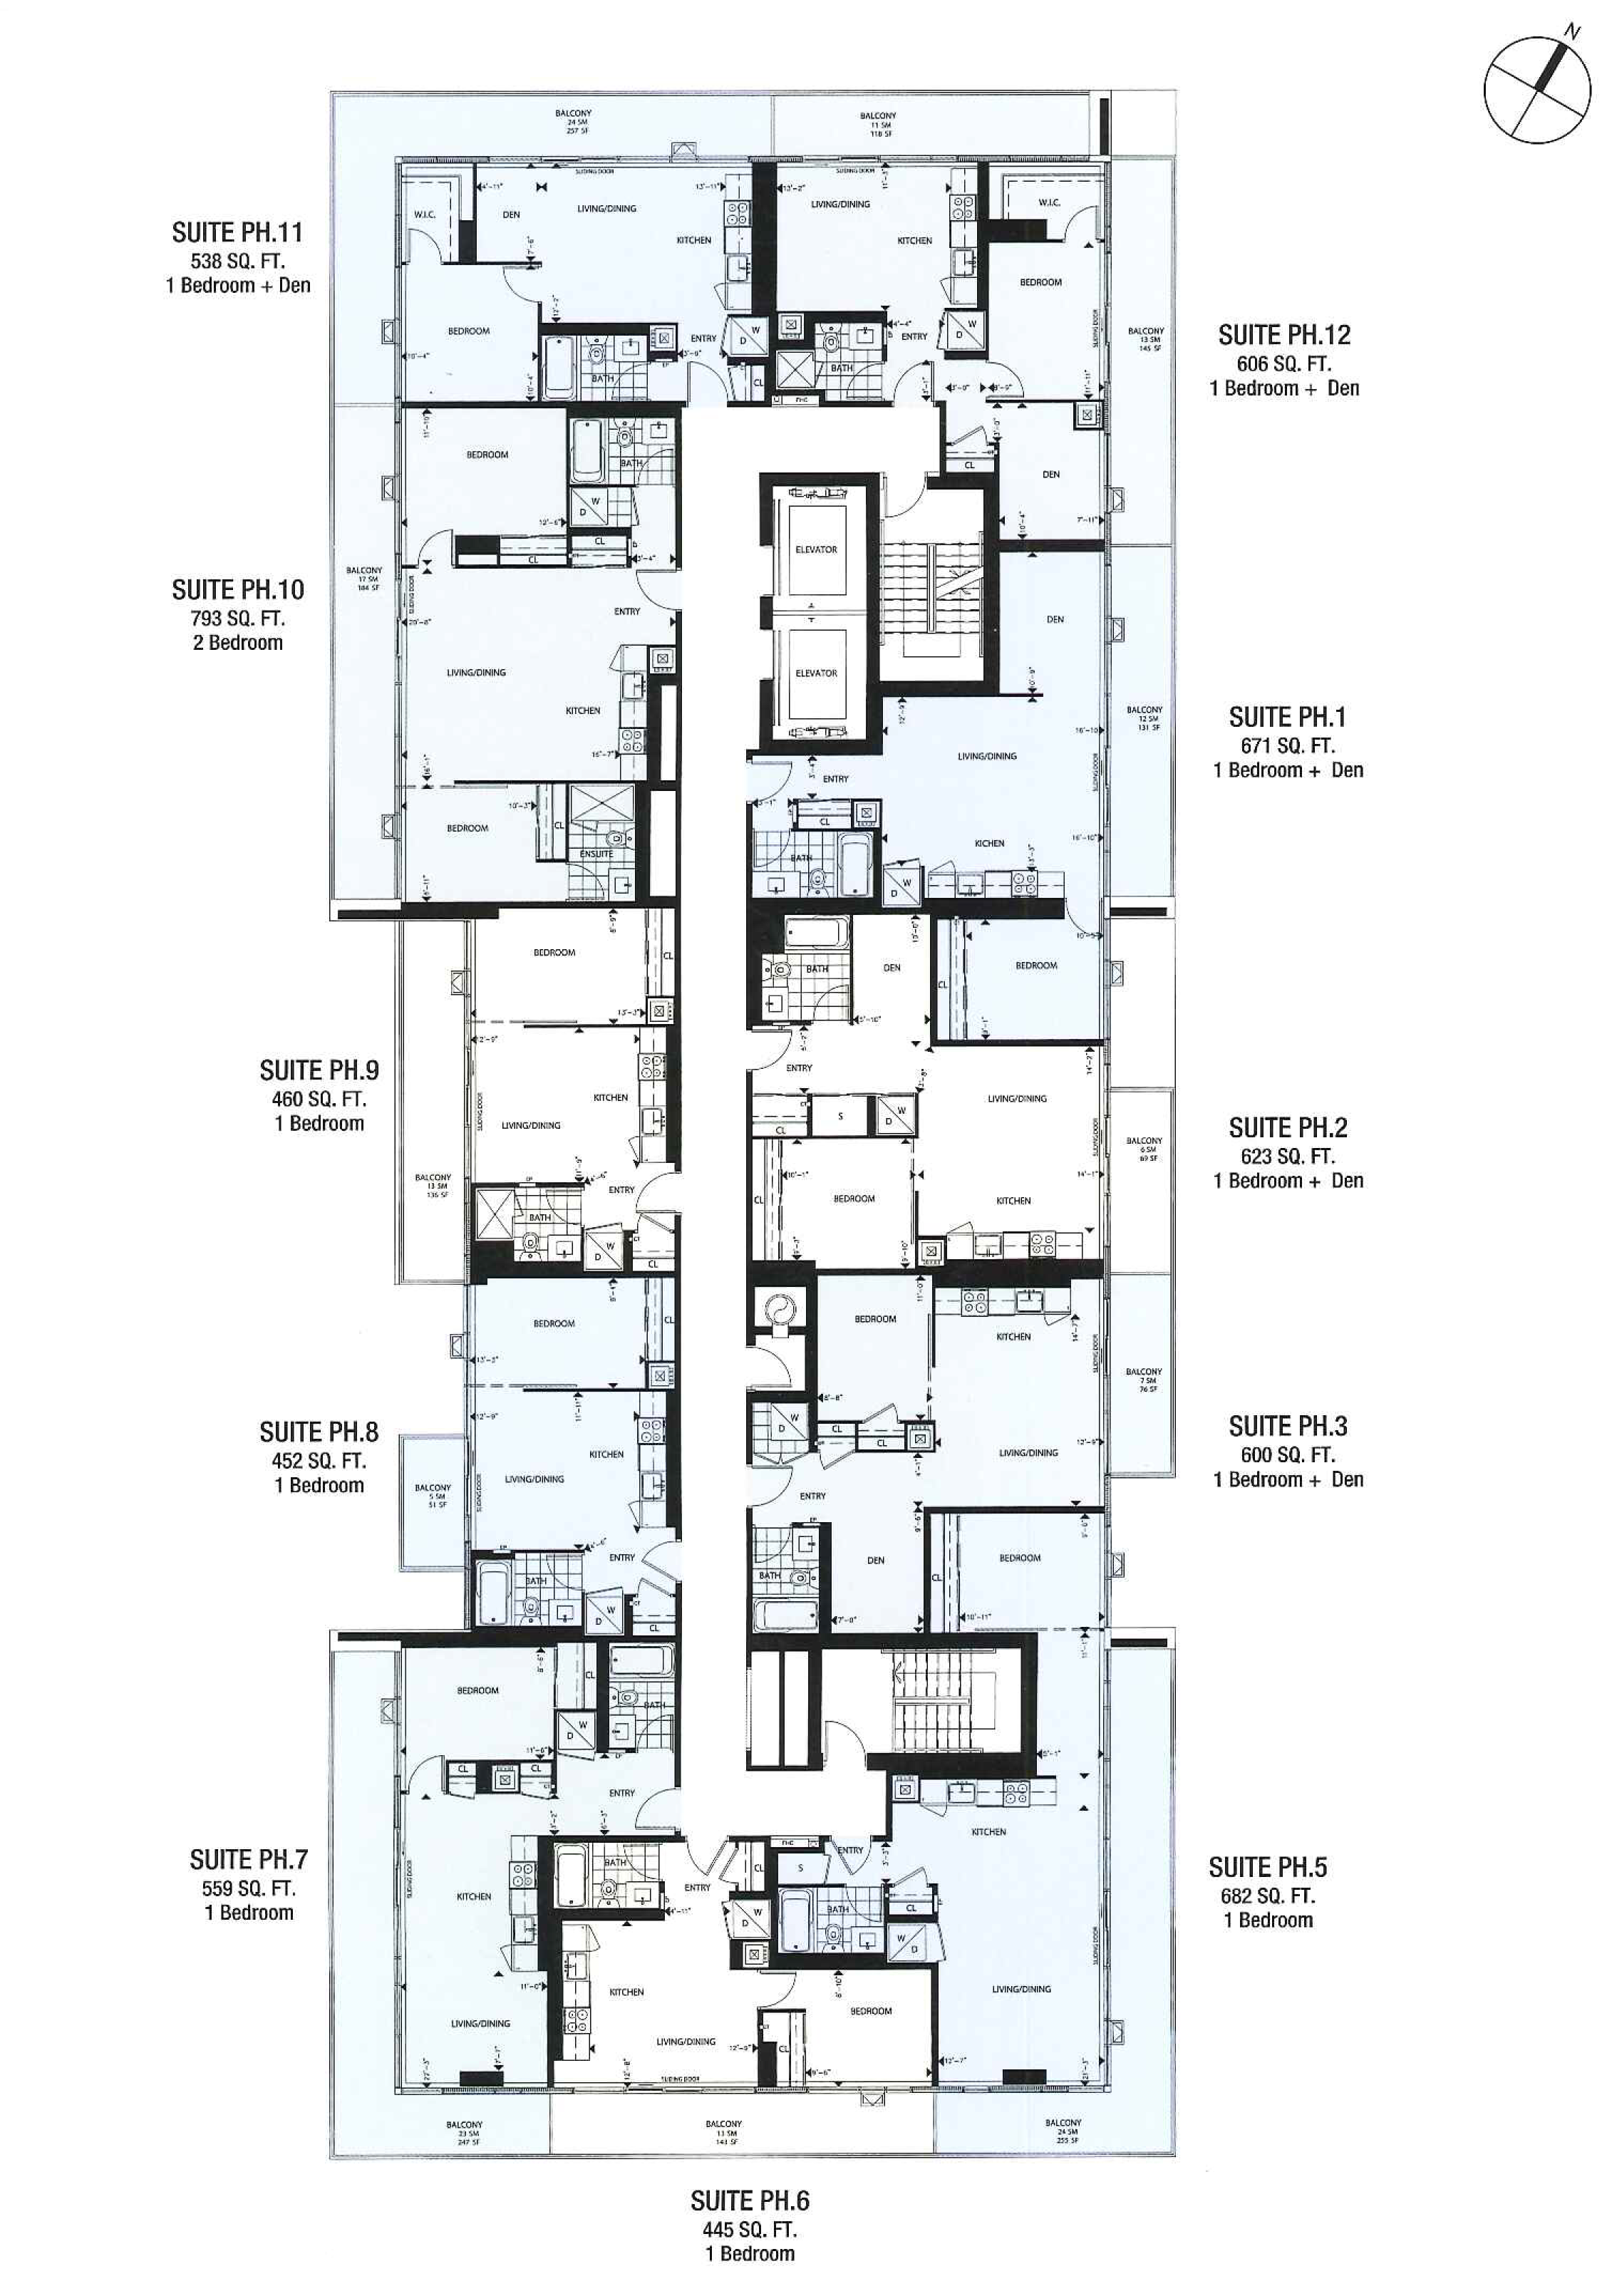 THE COLLEGE CONDOS - FLOOPLANS PENTHOUSE LEVEL - CONTACT YOSSI KAPLAN